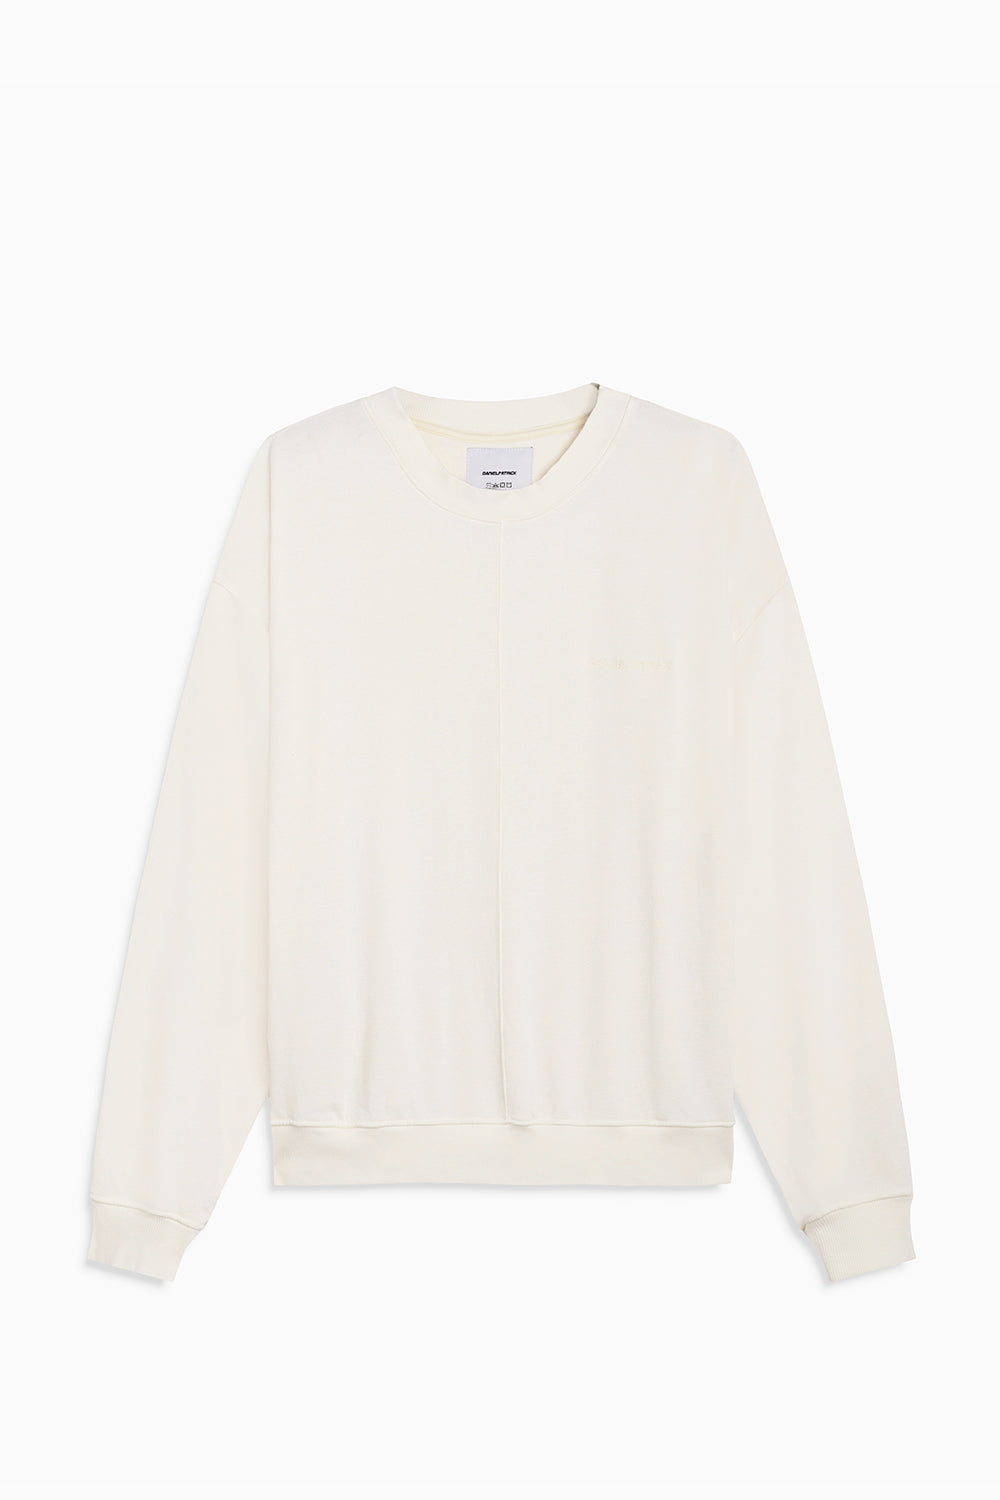 loop terry crewneck sweatshirt / natural terry